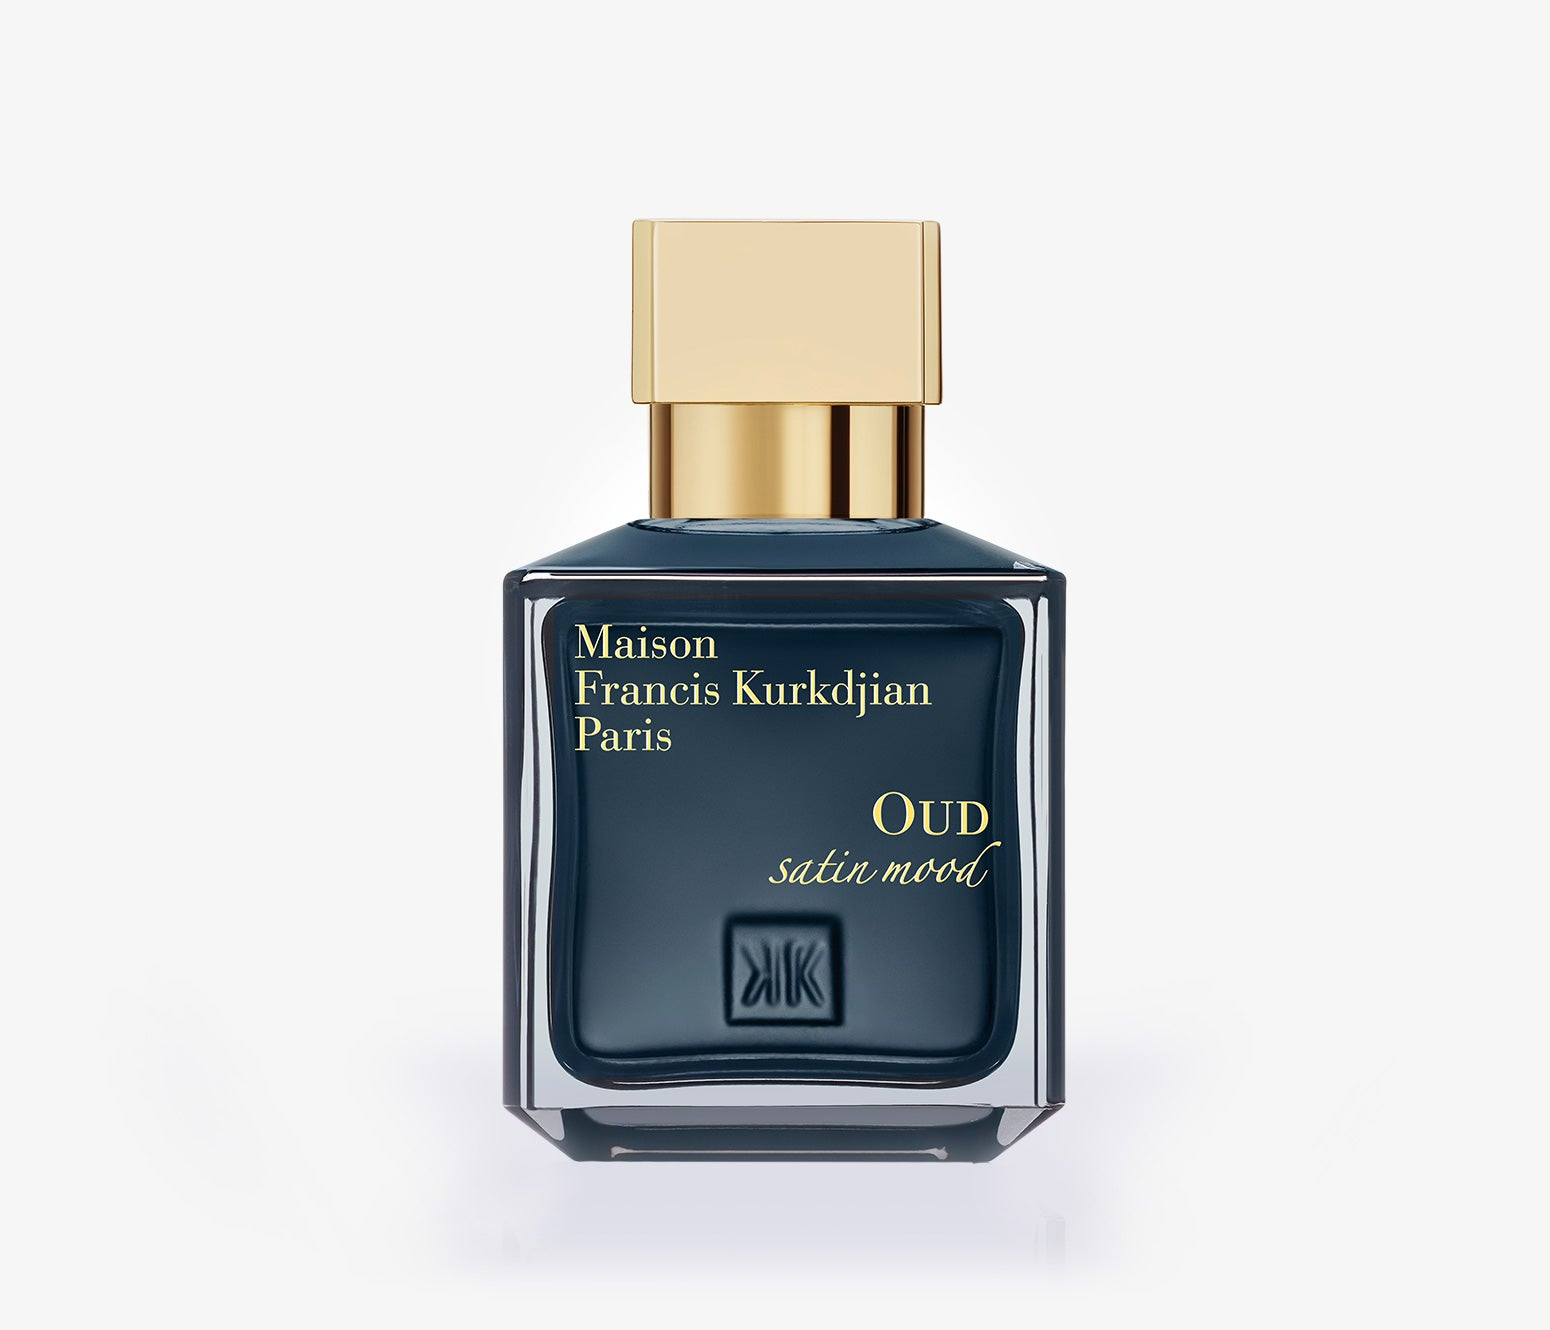 Are You In The Mood For Oud? – Les Senteurs